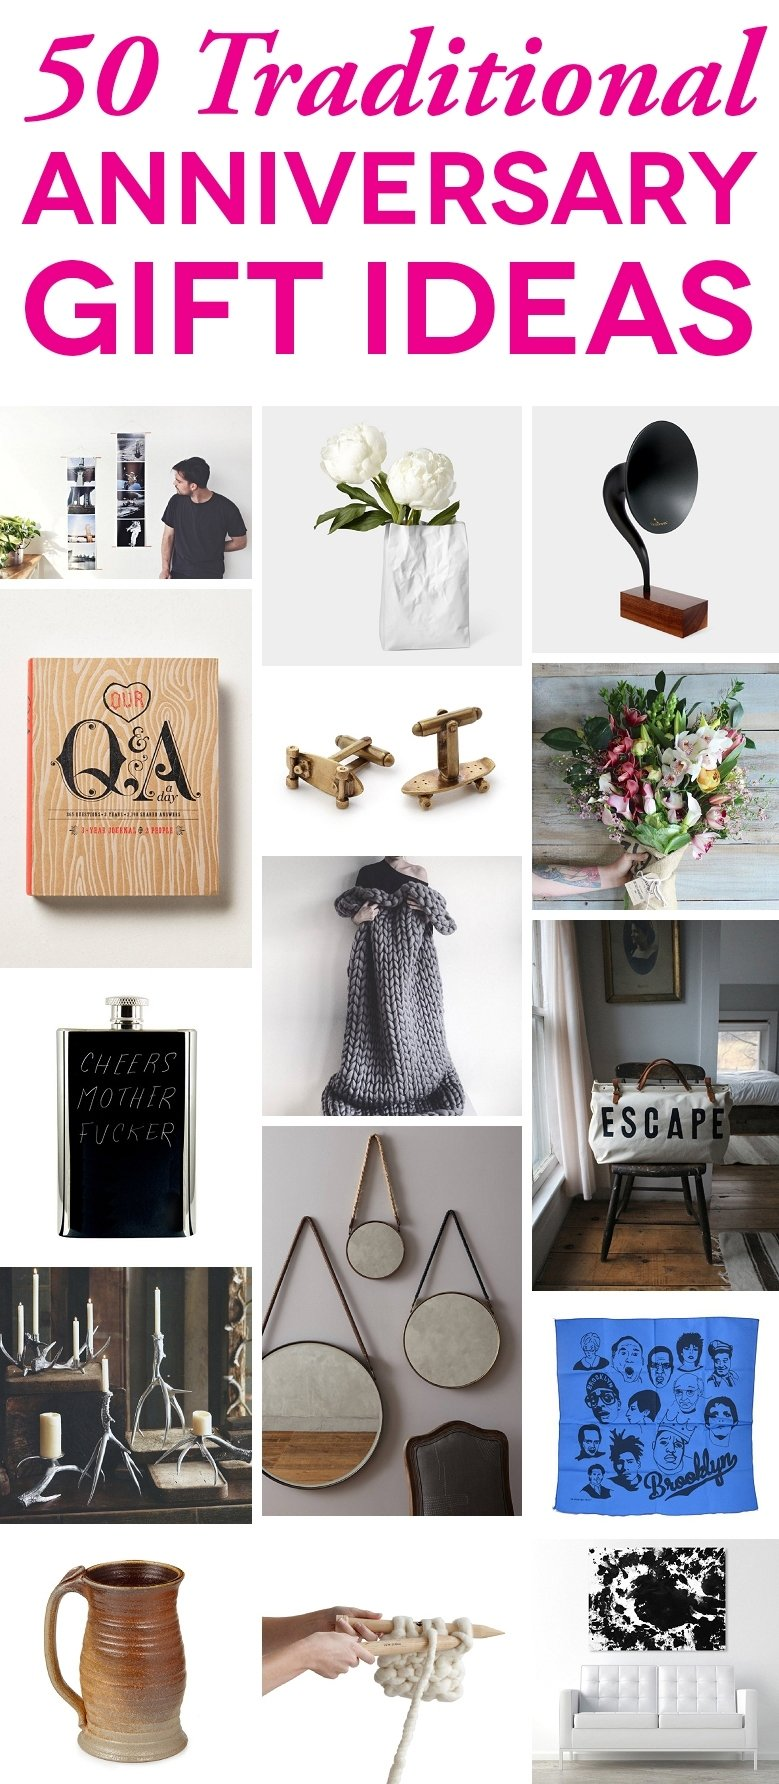 10 Gorgeous Third Anniversary Gift Ideas For Men traditional anniversary giftsyear a practical wedding 26